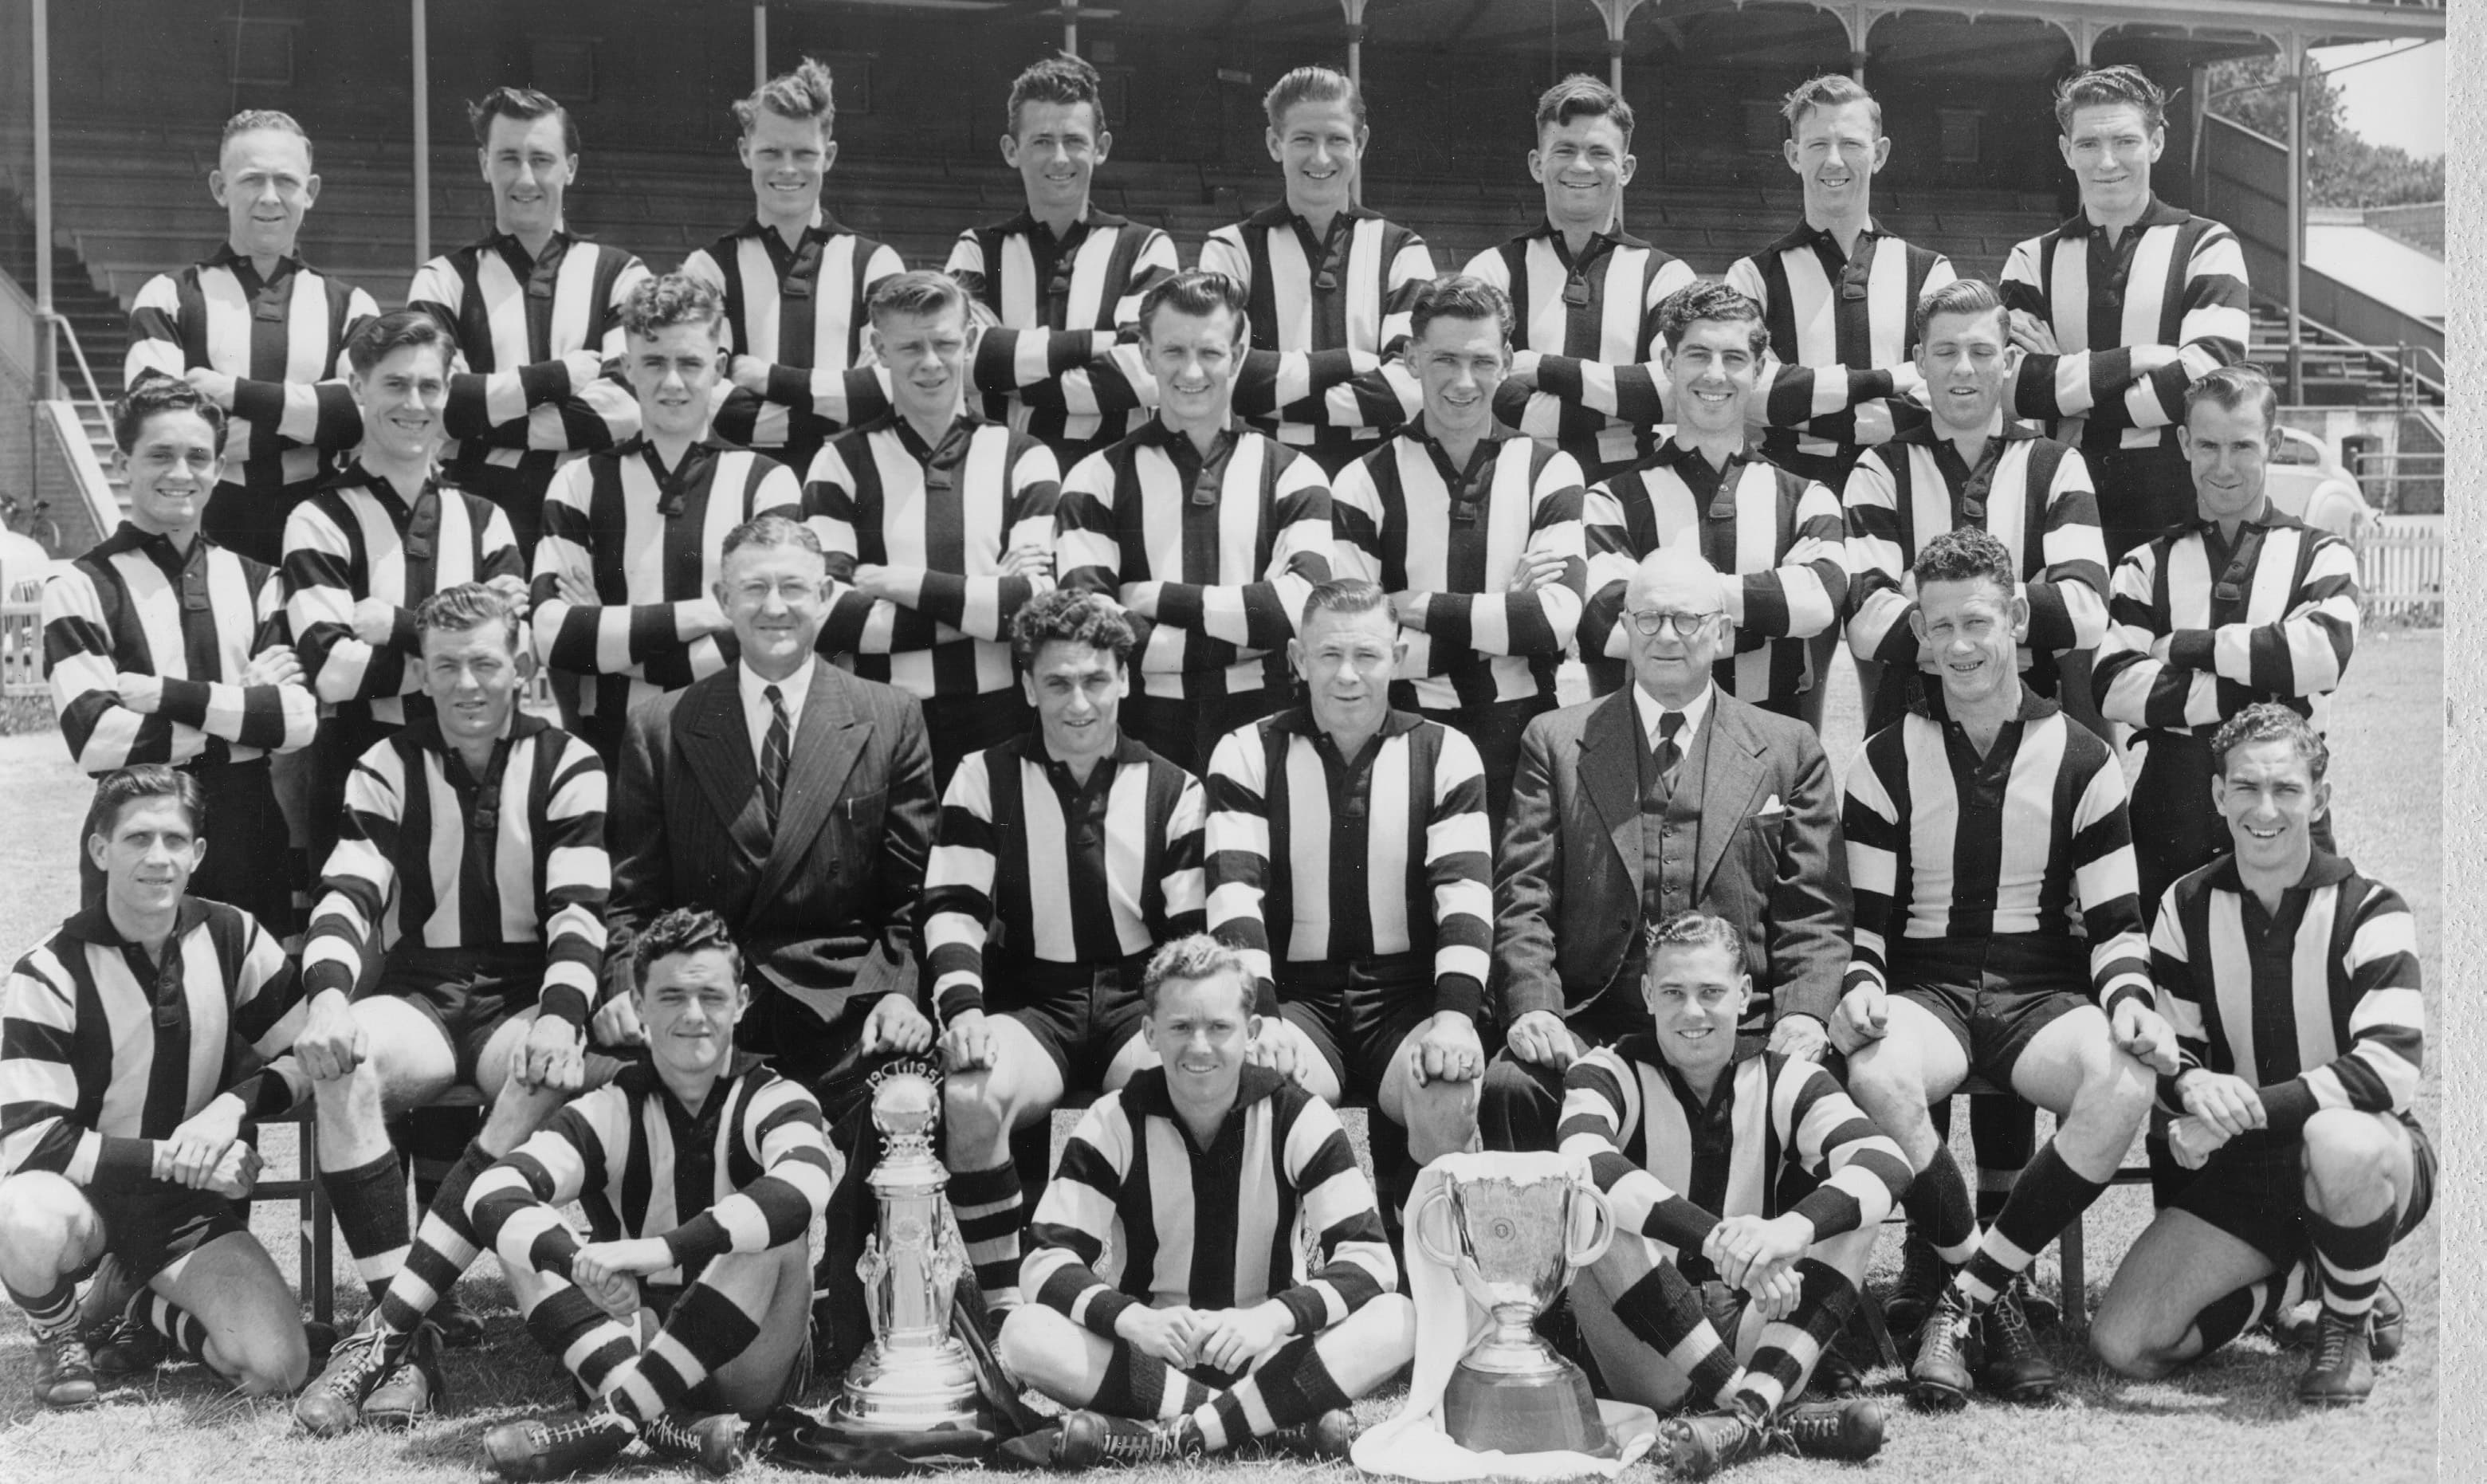 Dean Trowse, third row, from the left in the 1951 premiership team